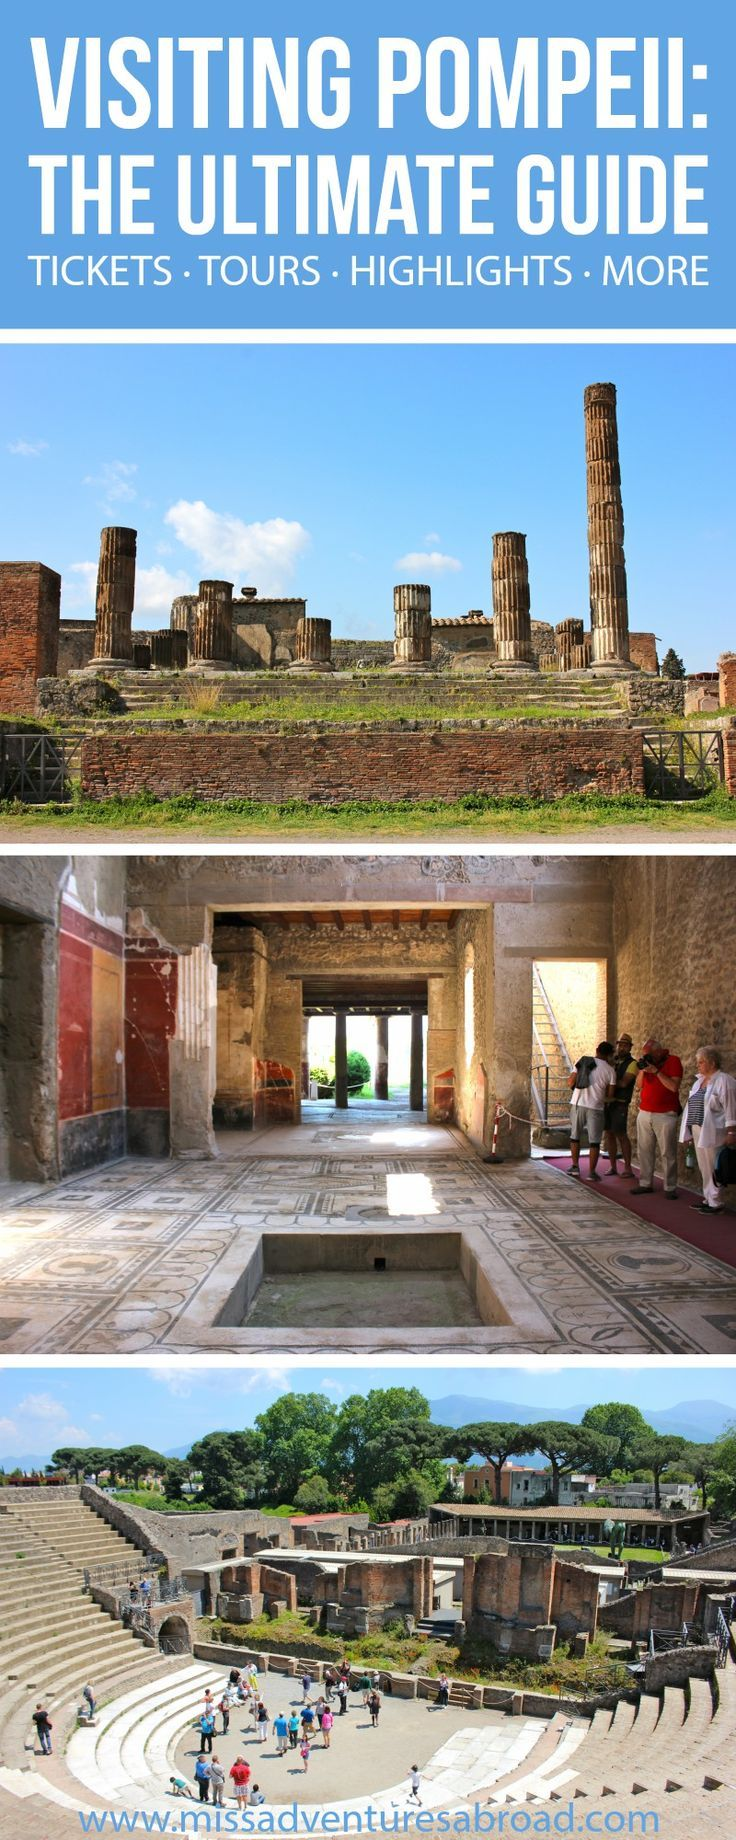 The Ultimate Guide To Visiting Pompeii | Miss Adventures Abroad